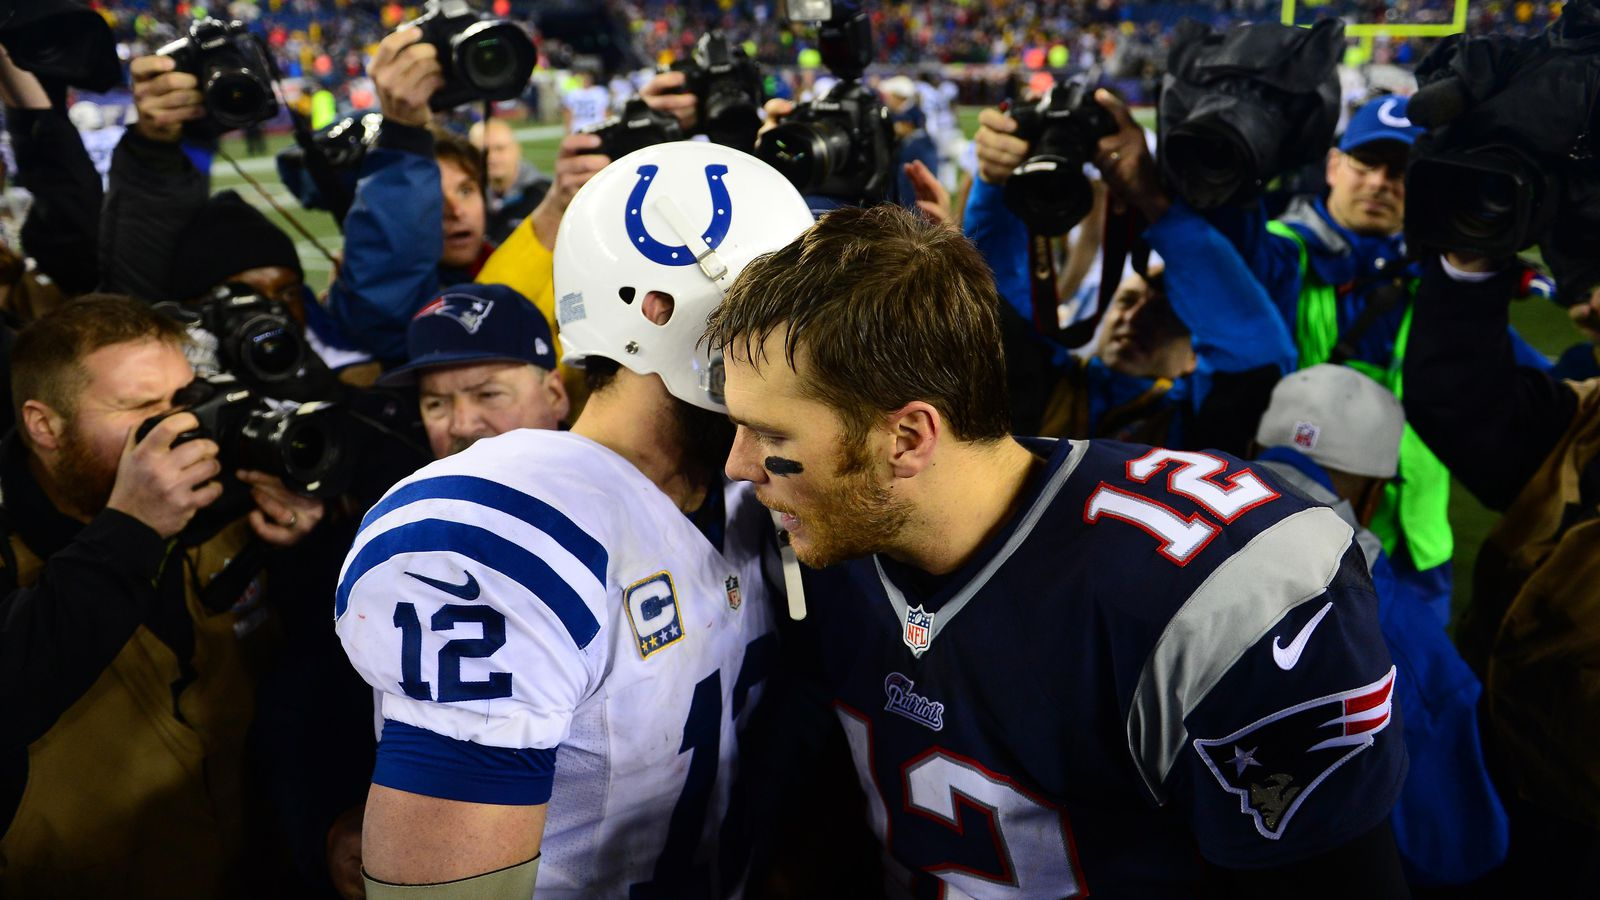 Patriots Vs Colts 2014 Live Stream Time Tv Schedule And